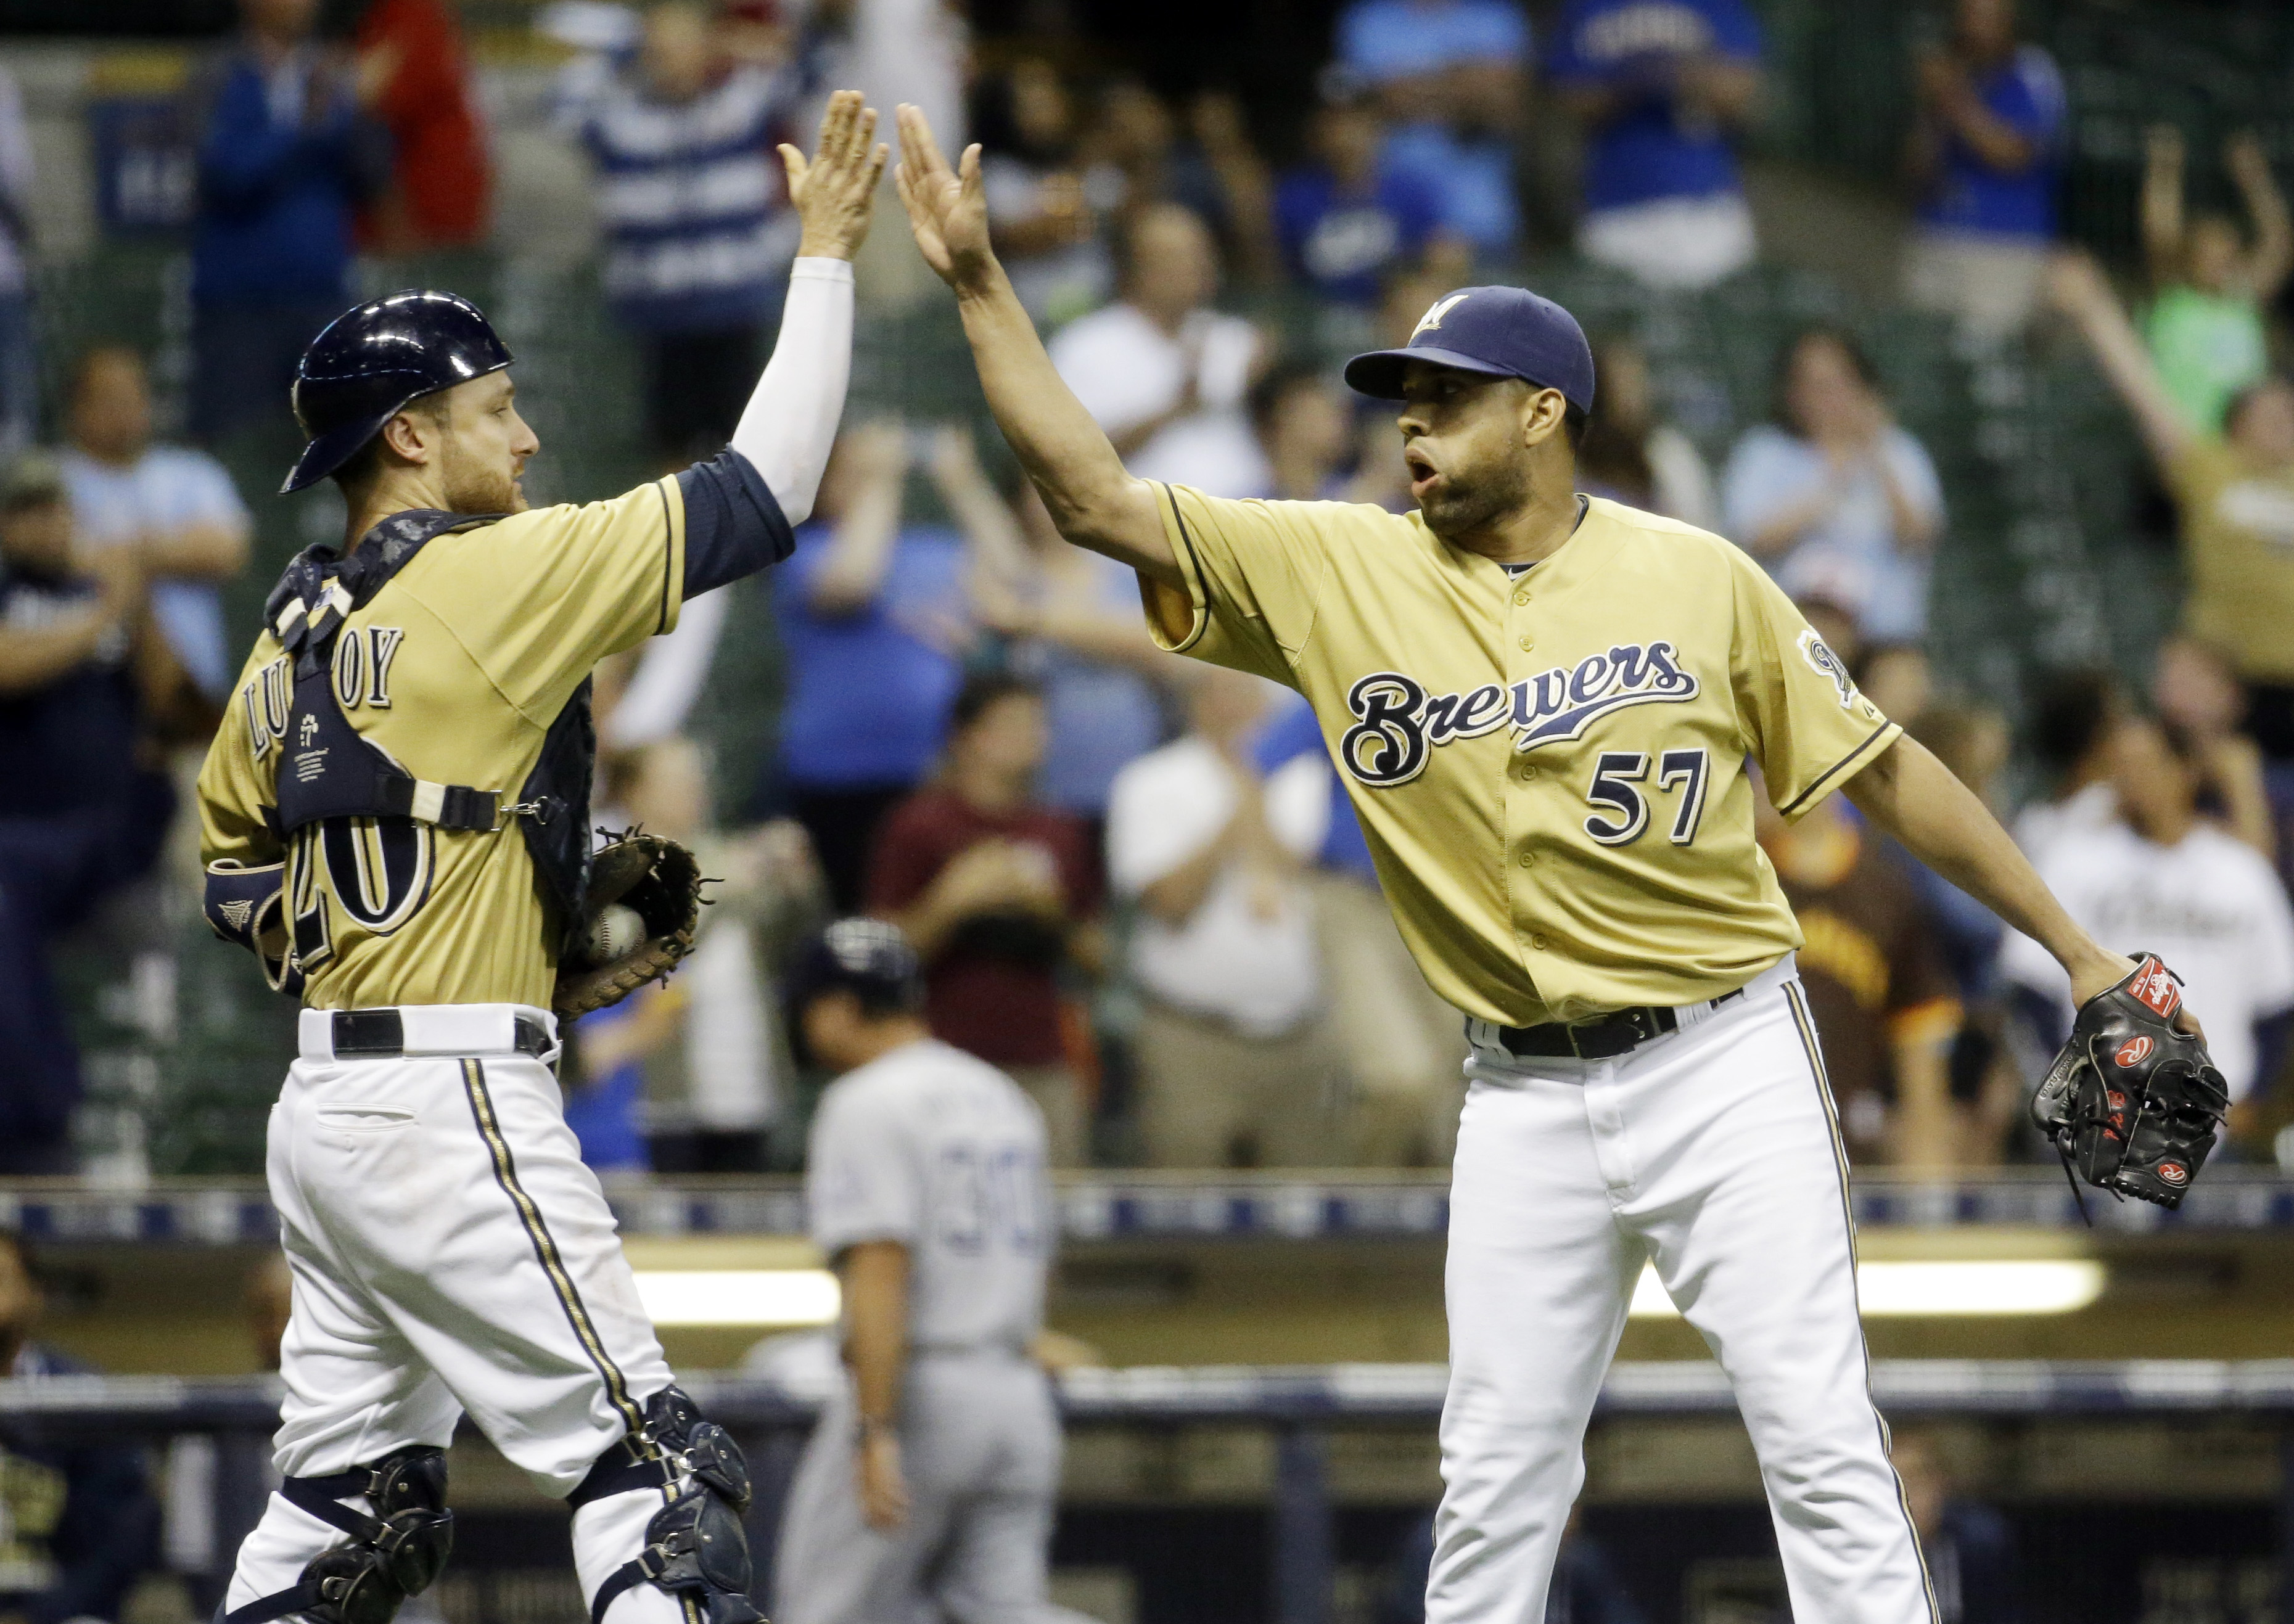 Milwaukee Brewers catcher Jonathan Lucroy and relief pitcher Francisco Rodriguez celebrate after  a baseball game against the San Diego Padres Wednesday, Aug. 5, 2015, in Milwaukee. The Brewers won 8-5. (AP Photo/Morry Gash)